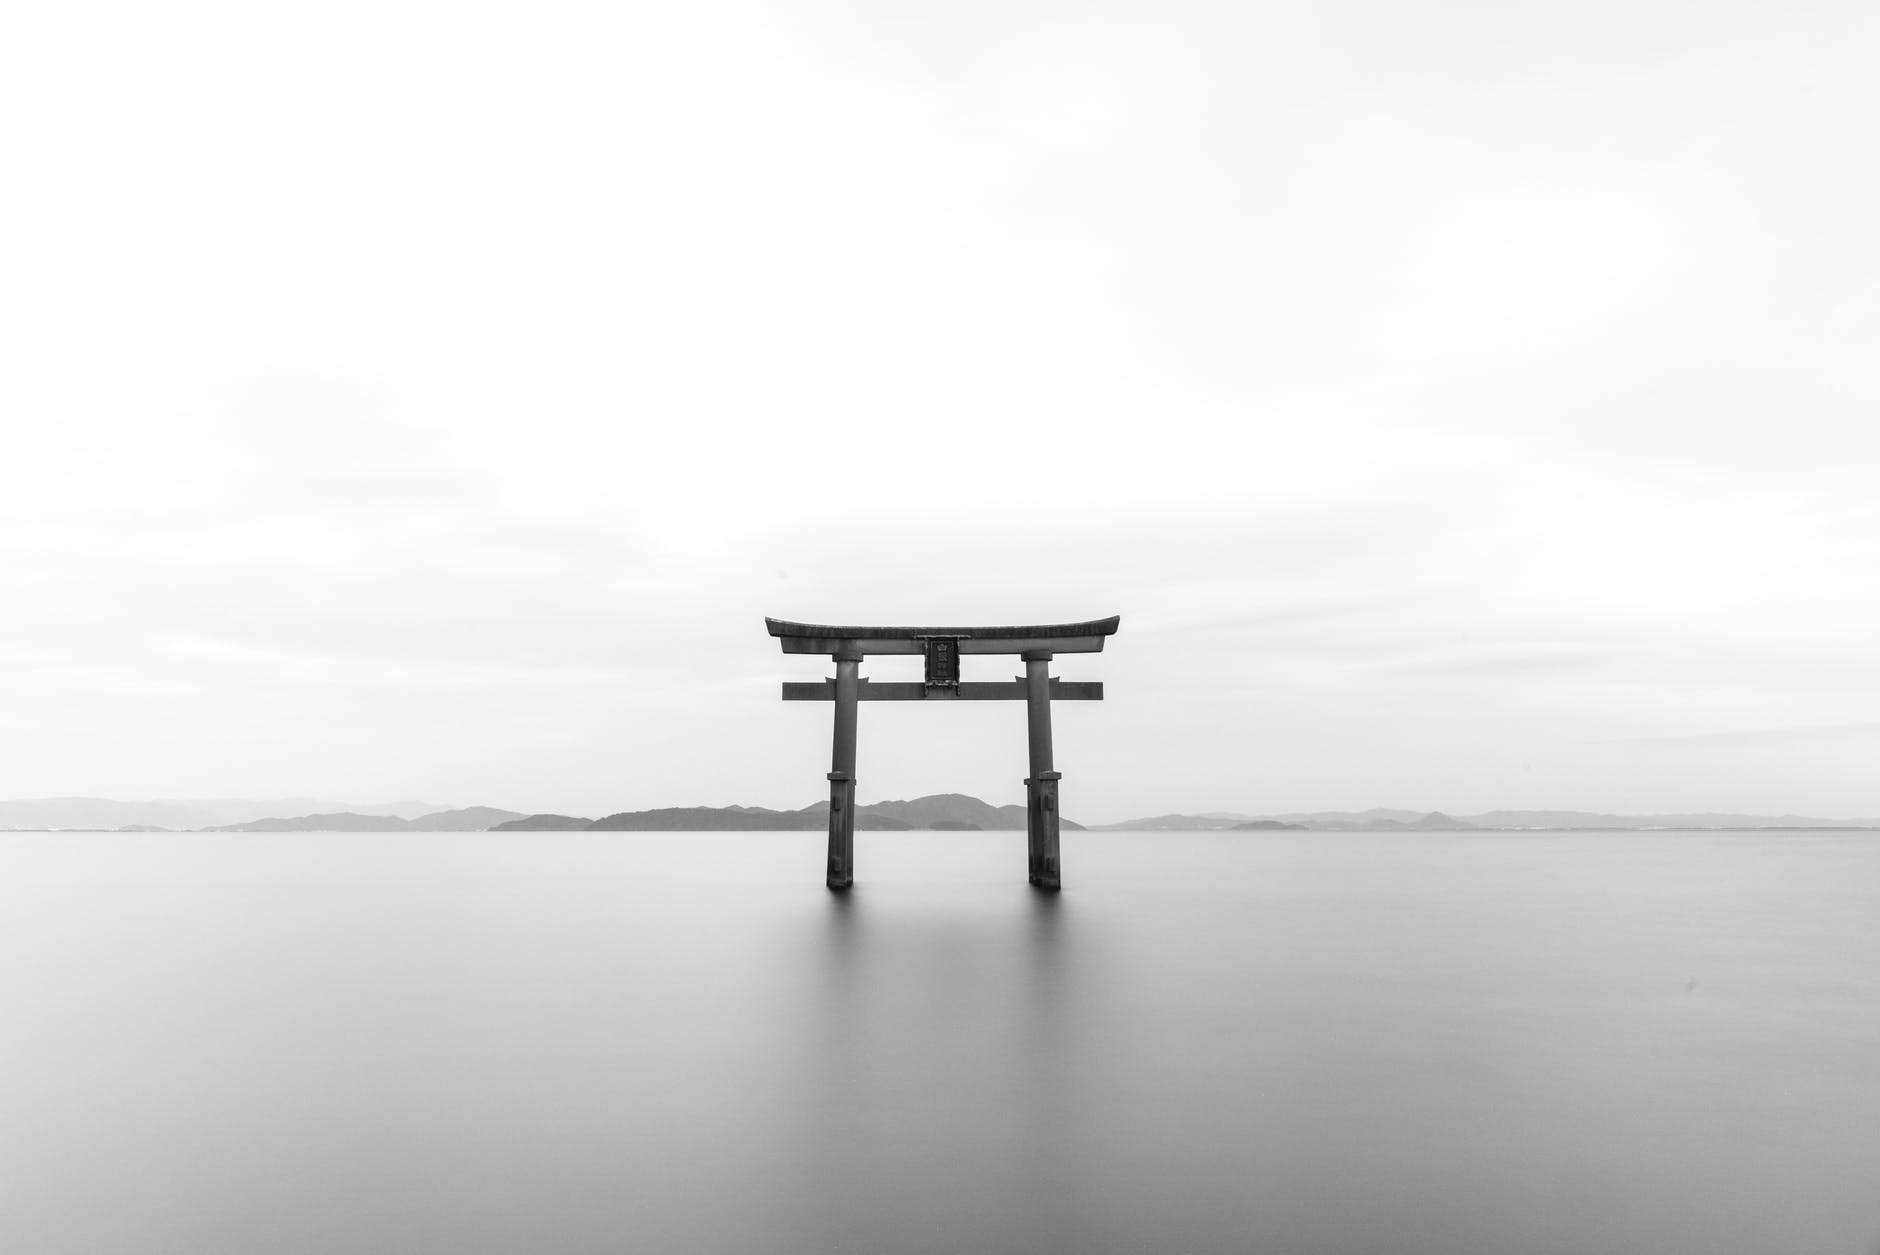 ancient architecture asia bench